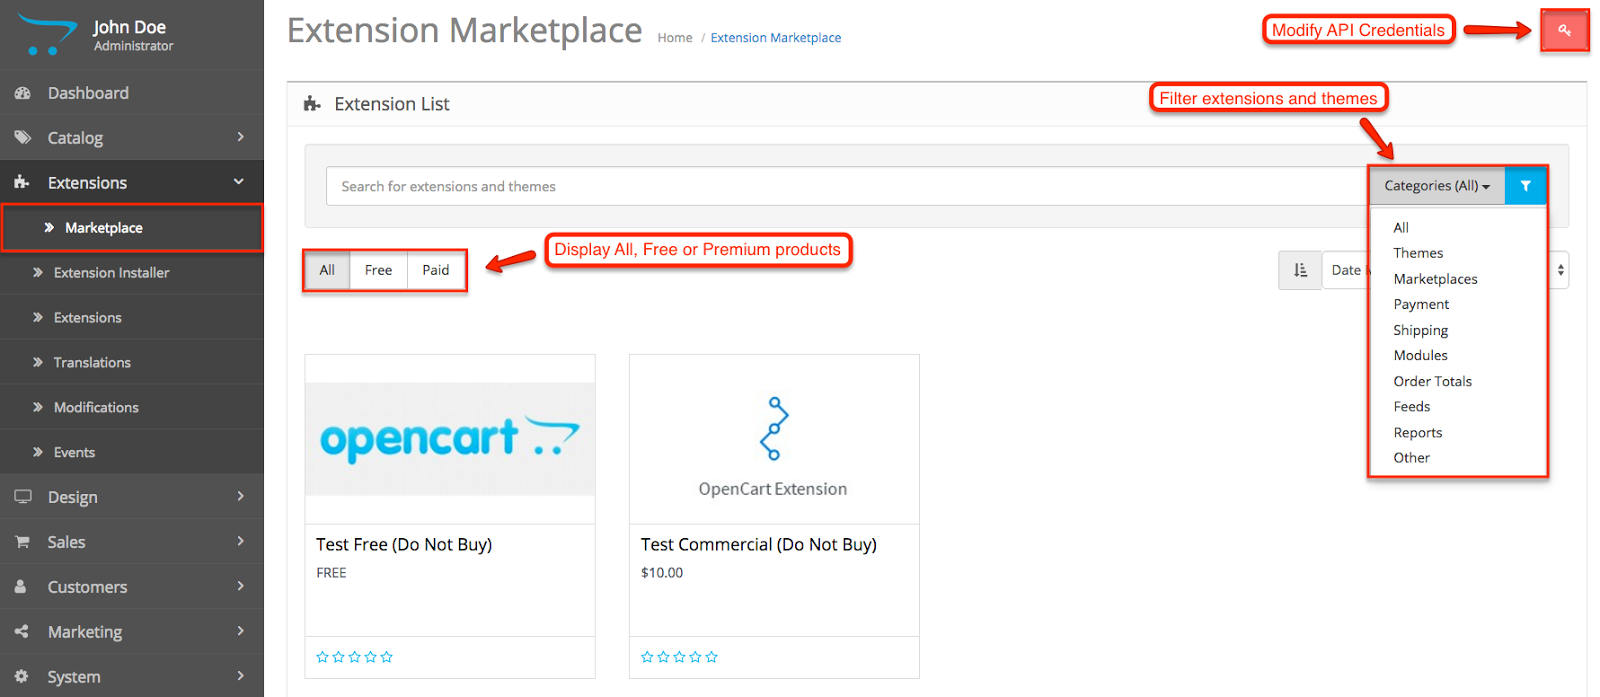 OpenCart Version 3.0.0.0 Available to Download Now